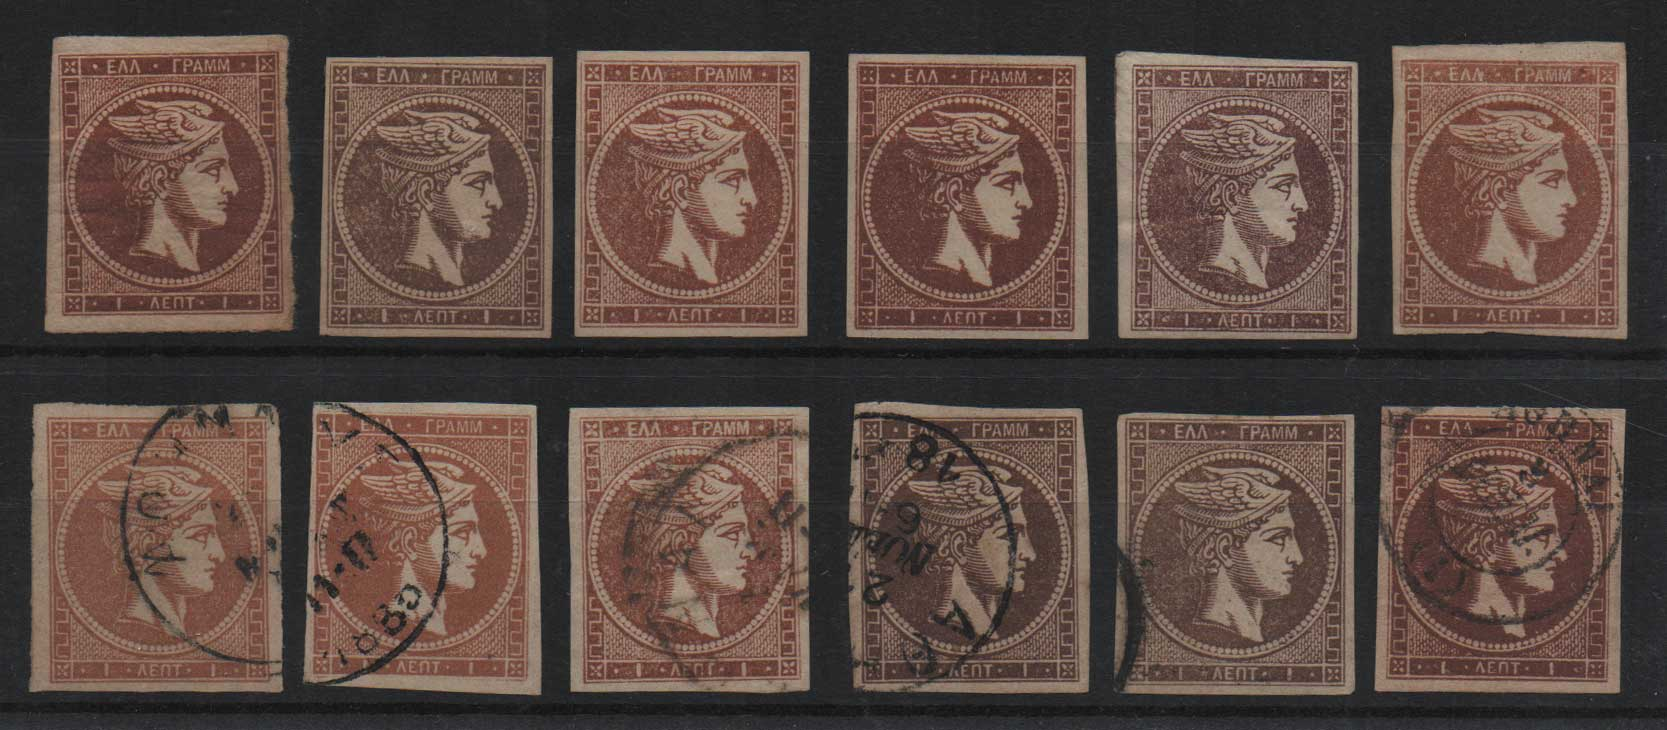 Lot 27 - -  LARGE HERMES HEAD large hermes head -  Athens Auctions Public Auction 82 General Stamp Sale